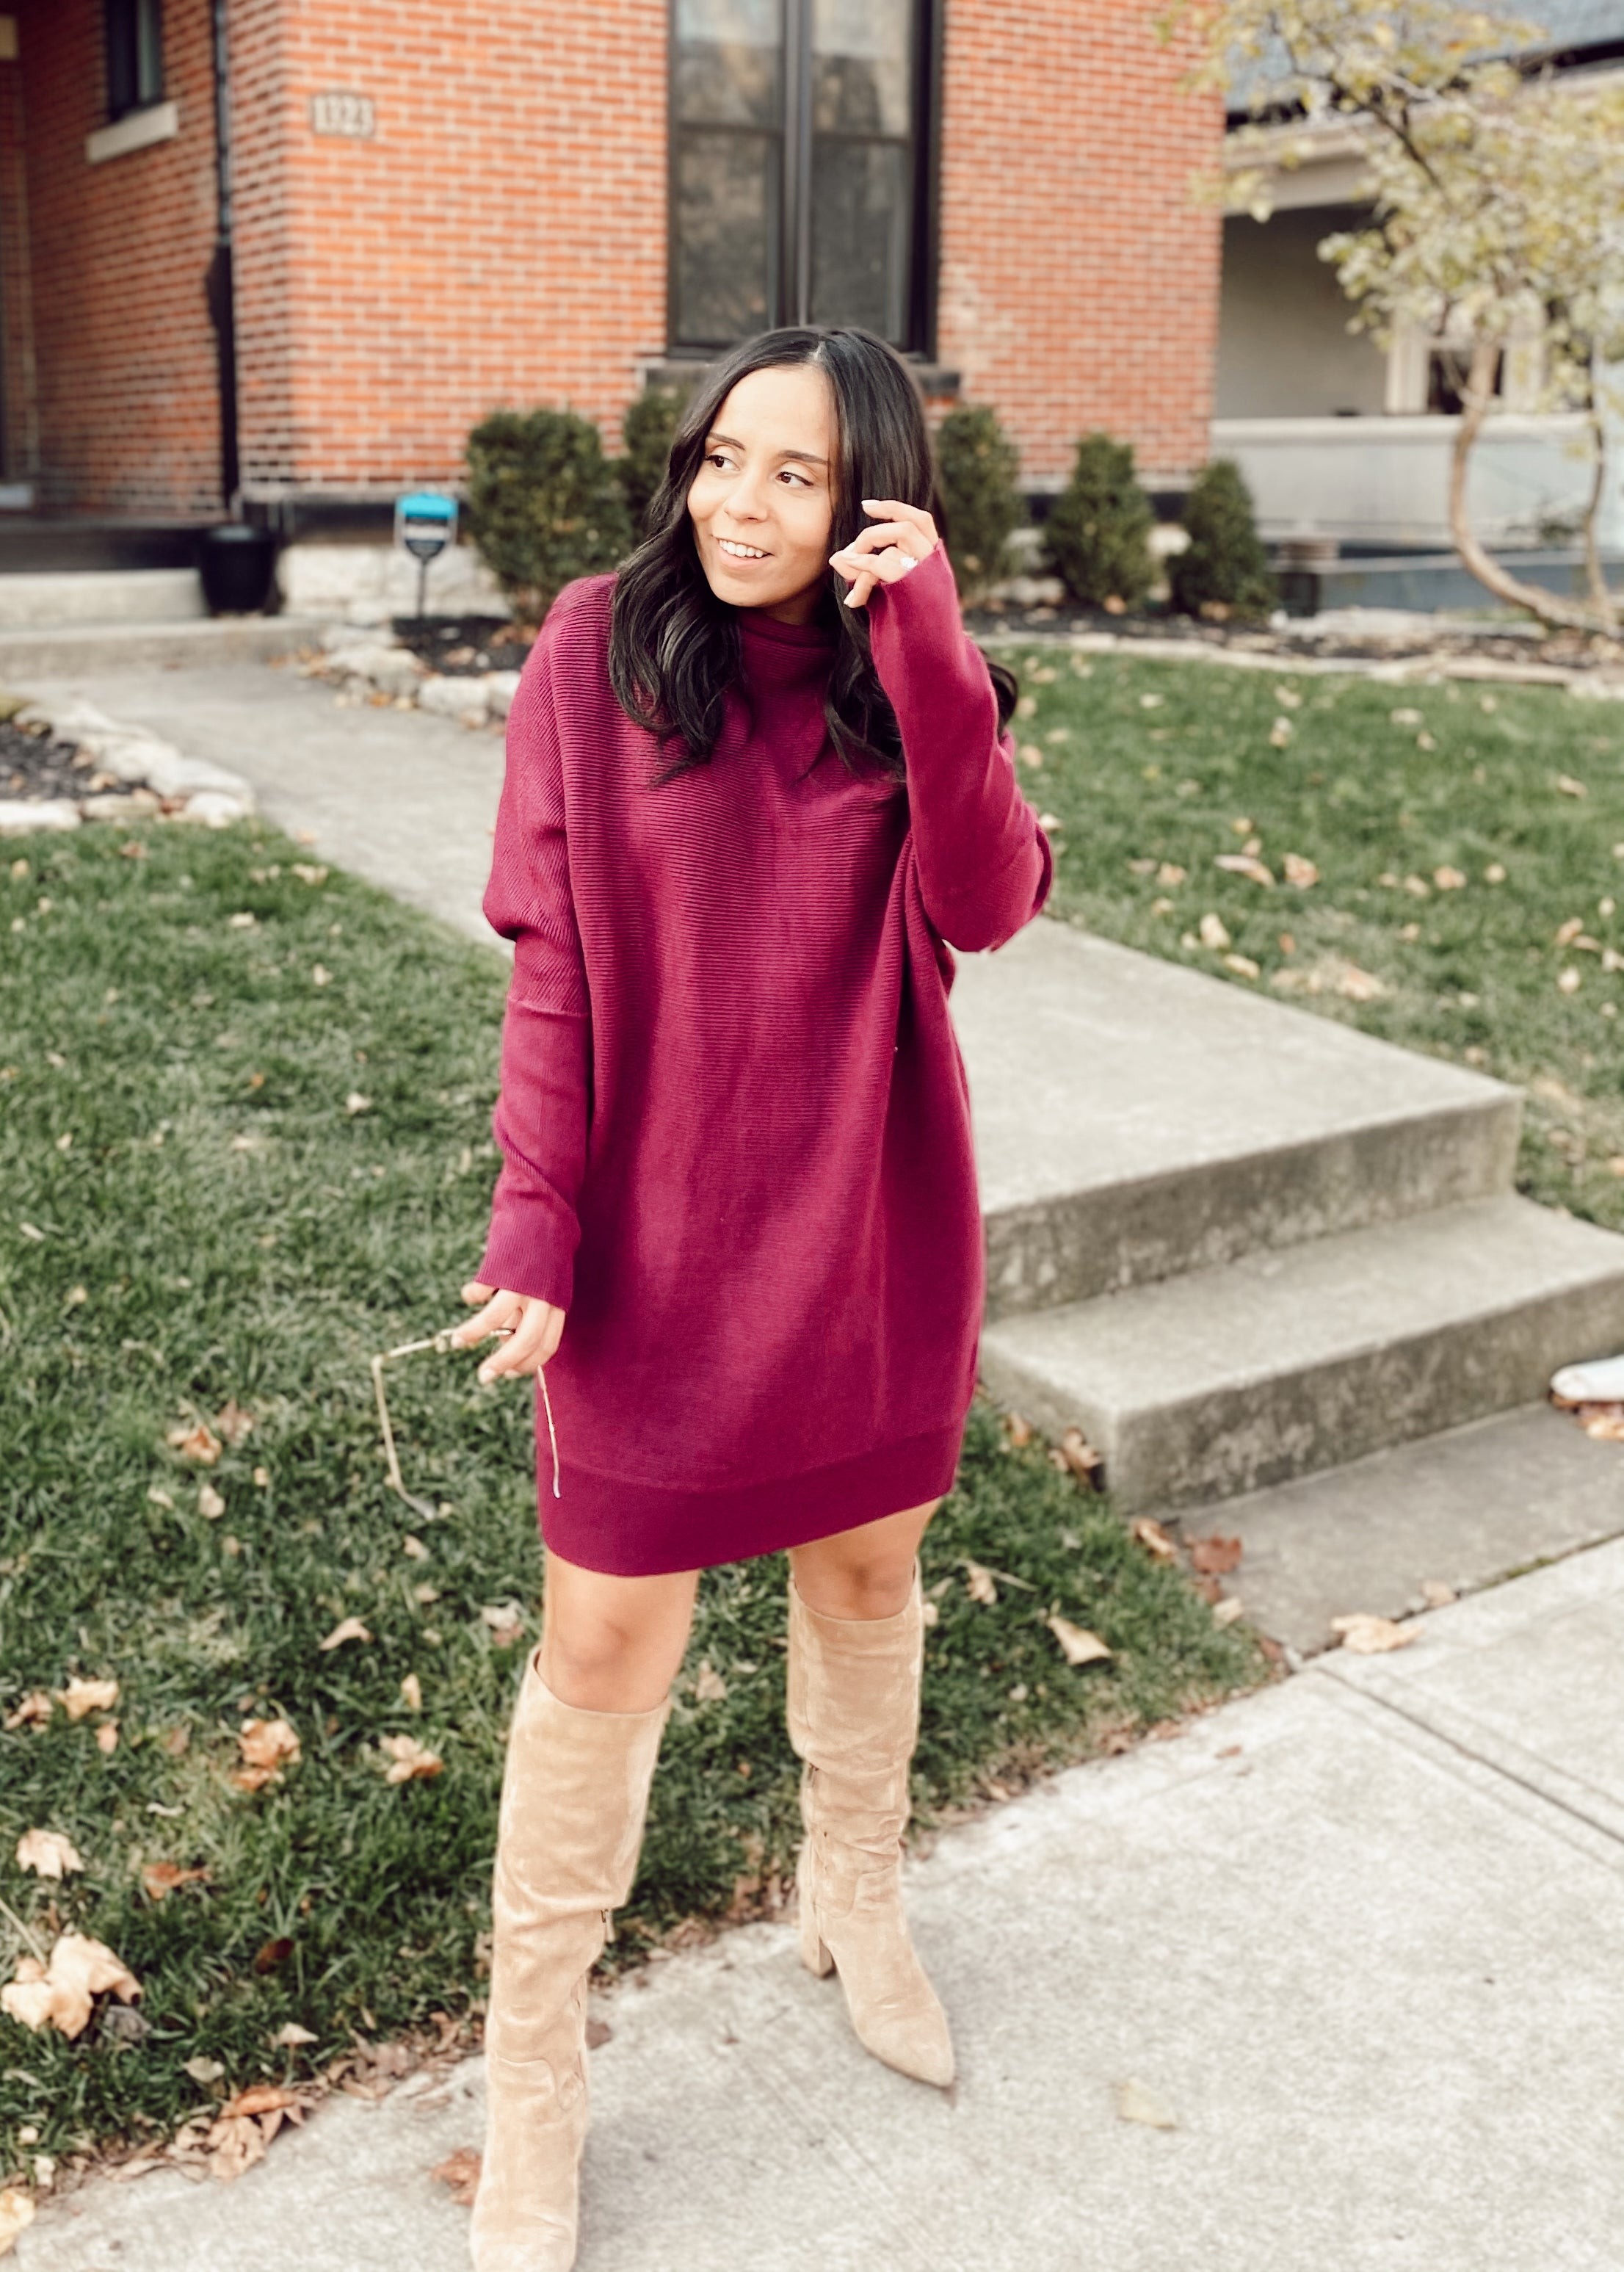 Danielle Sweater Dress